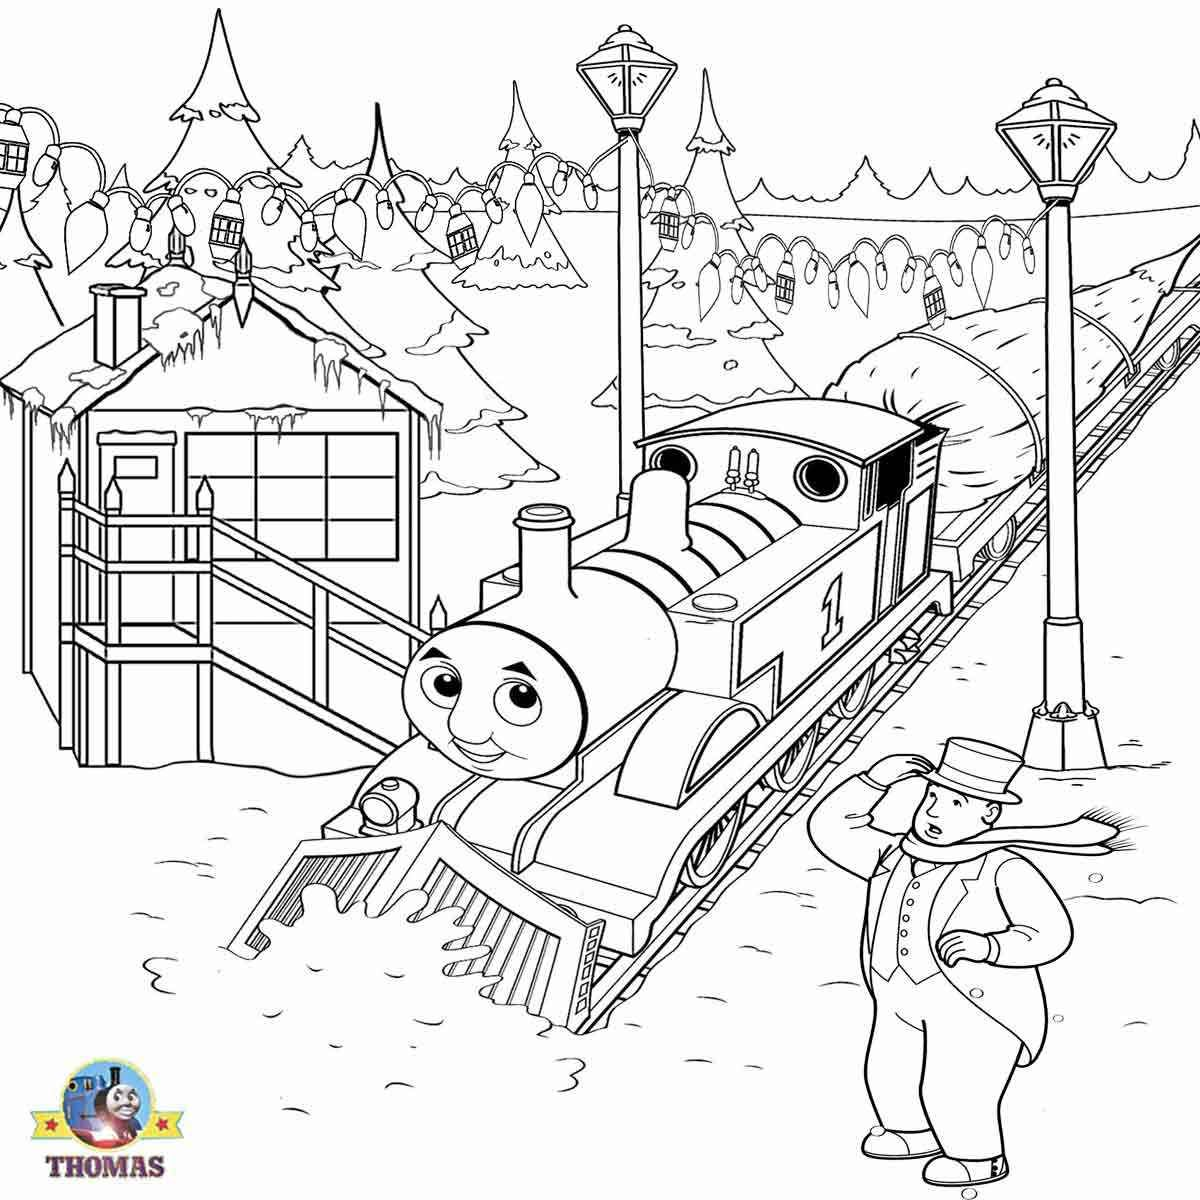 ewfrasfva thomas the train and friends coloring pages for you